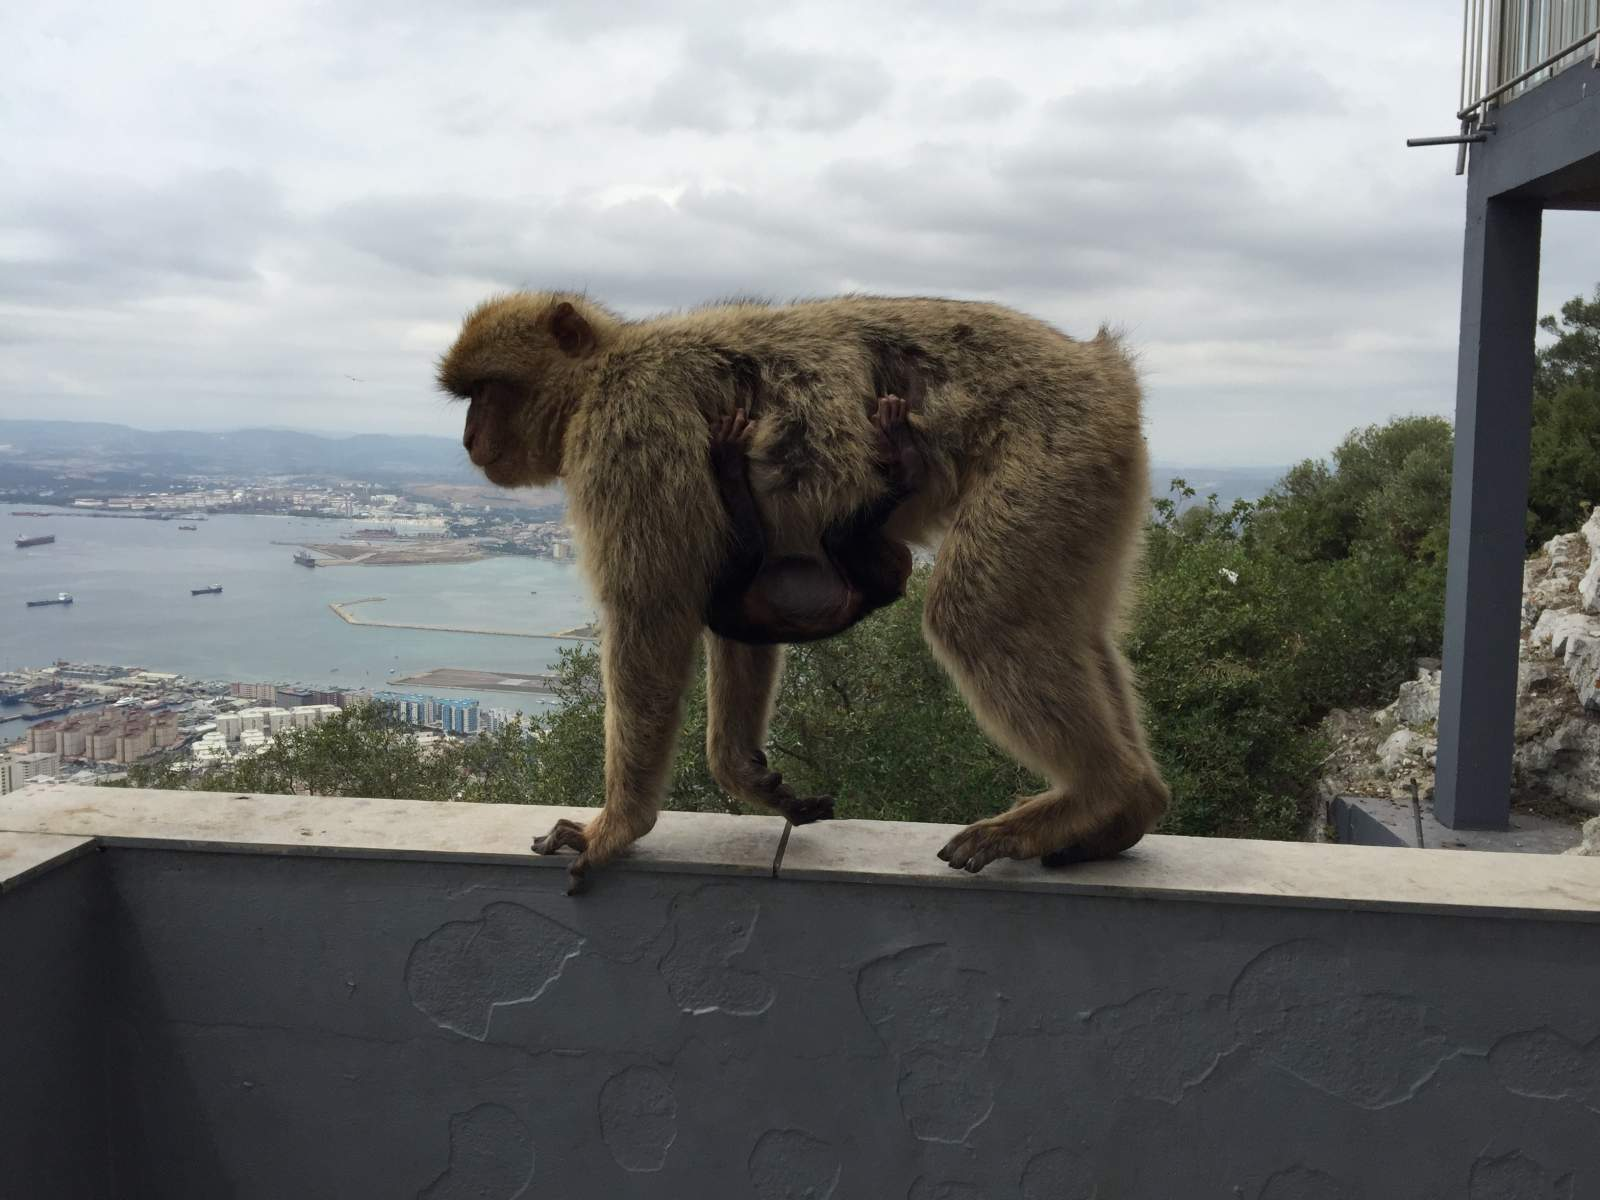 a day out in gibraltar from spain with two young children including a visit to the cable car to see the monkeys